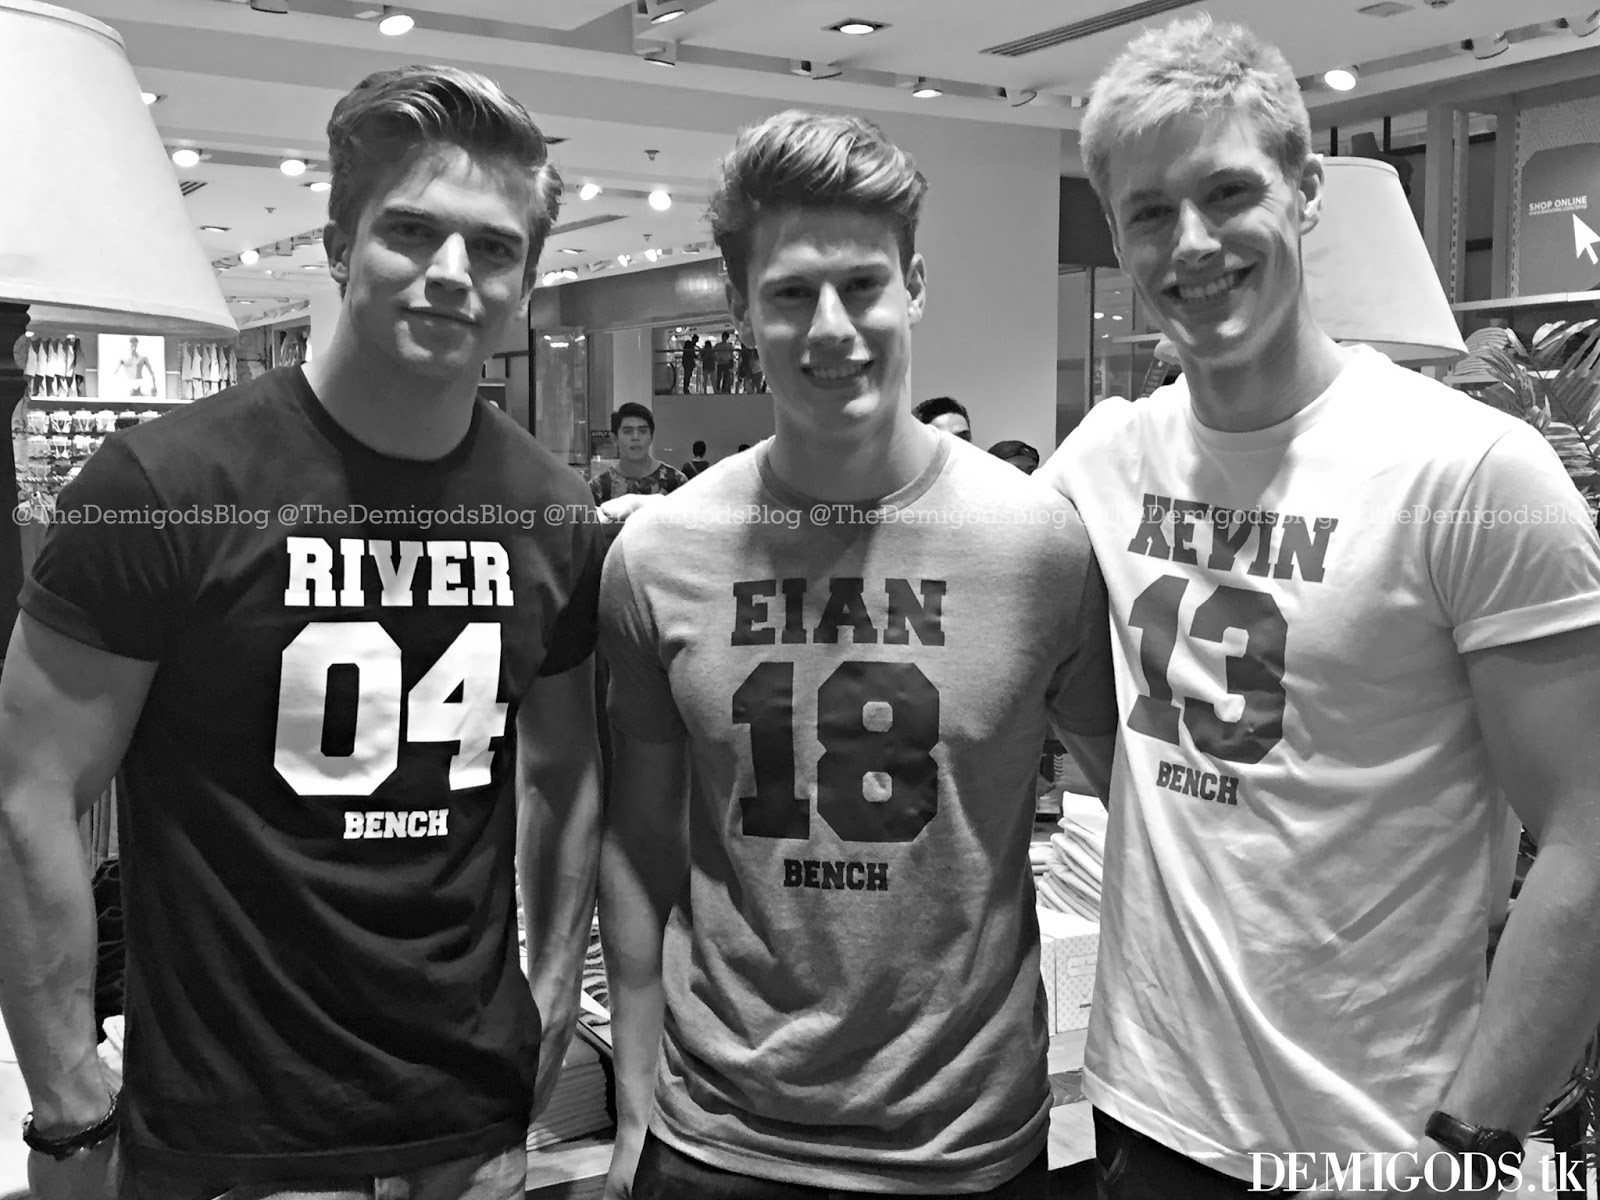 Demigods the bench meet and greet with river viiperi eian scully it was about a month ago when demigods river viiperi eian scully and kevin hubsmith were flown in by retail giant bench in the philippines kristyandbryce Gallery